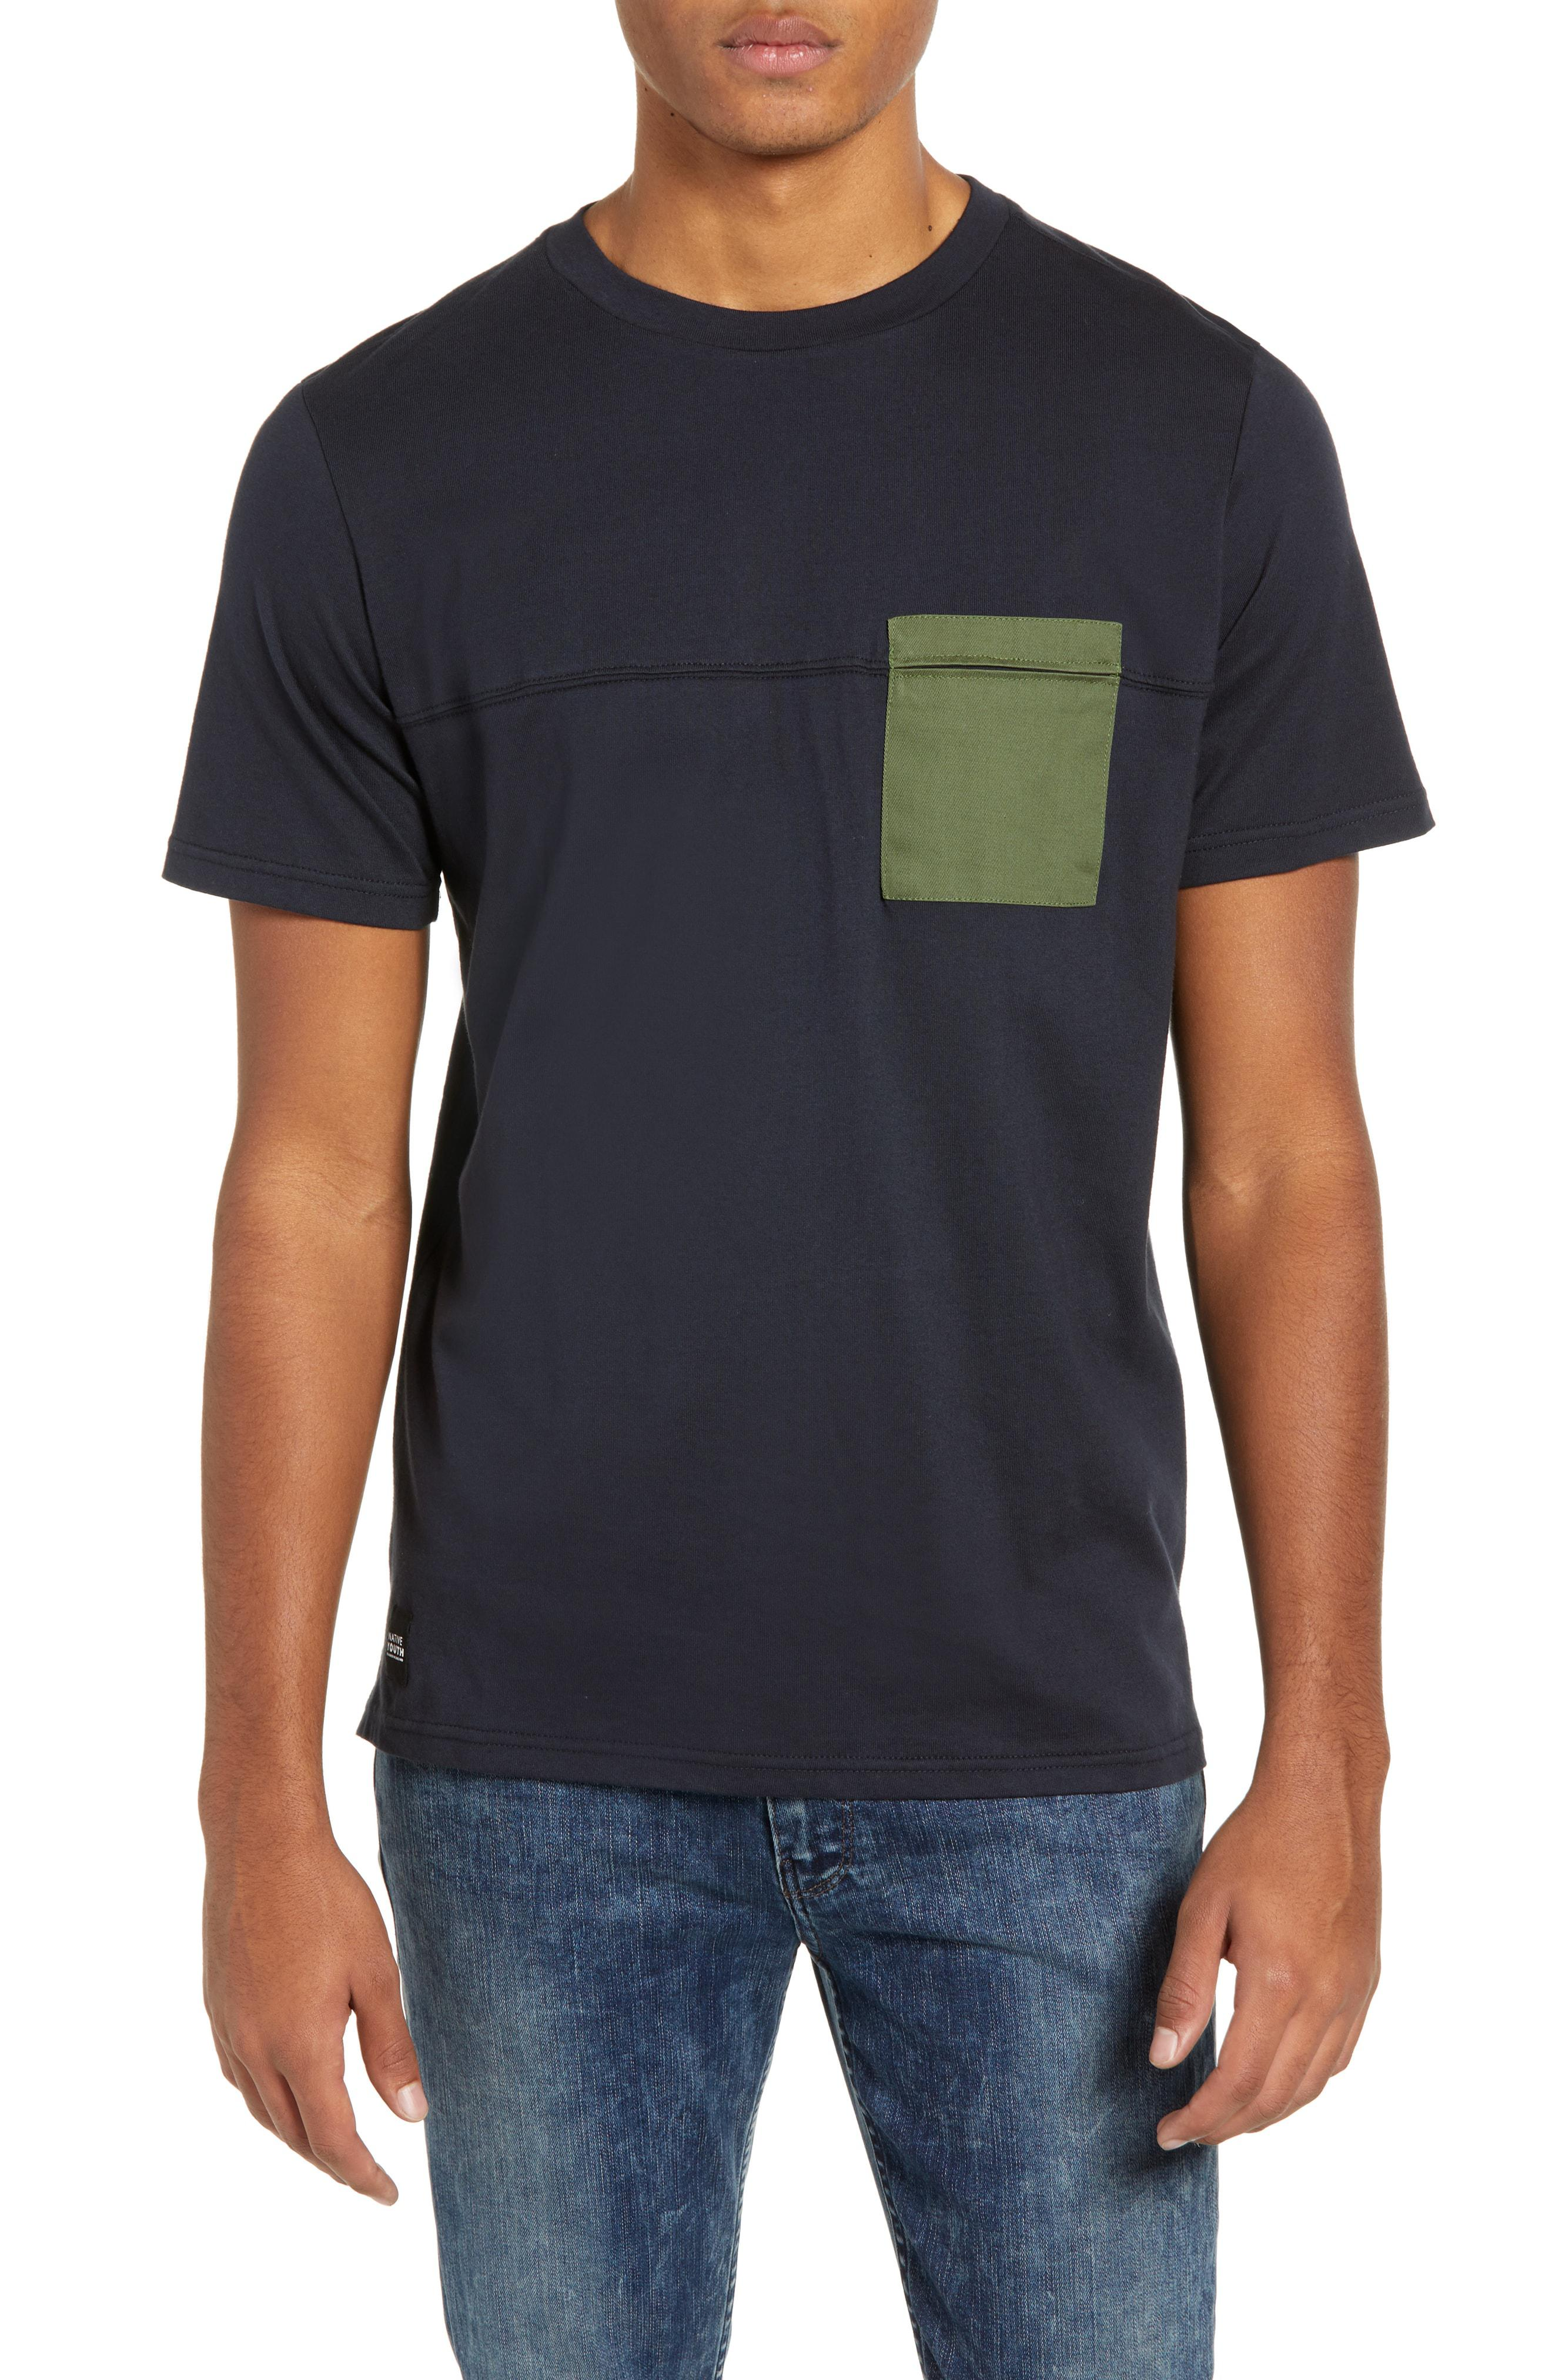 b8f26079217 Lyst - Native Youth Seamed Pocket T-shirt in Black for Men